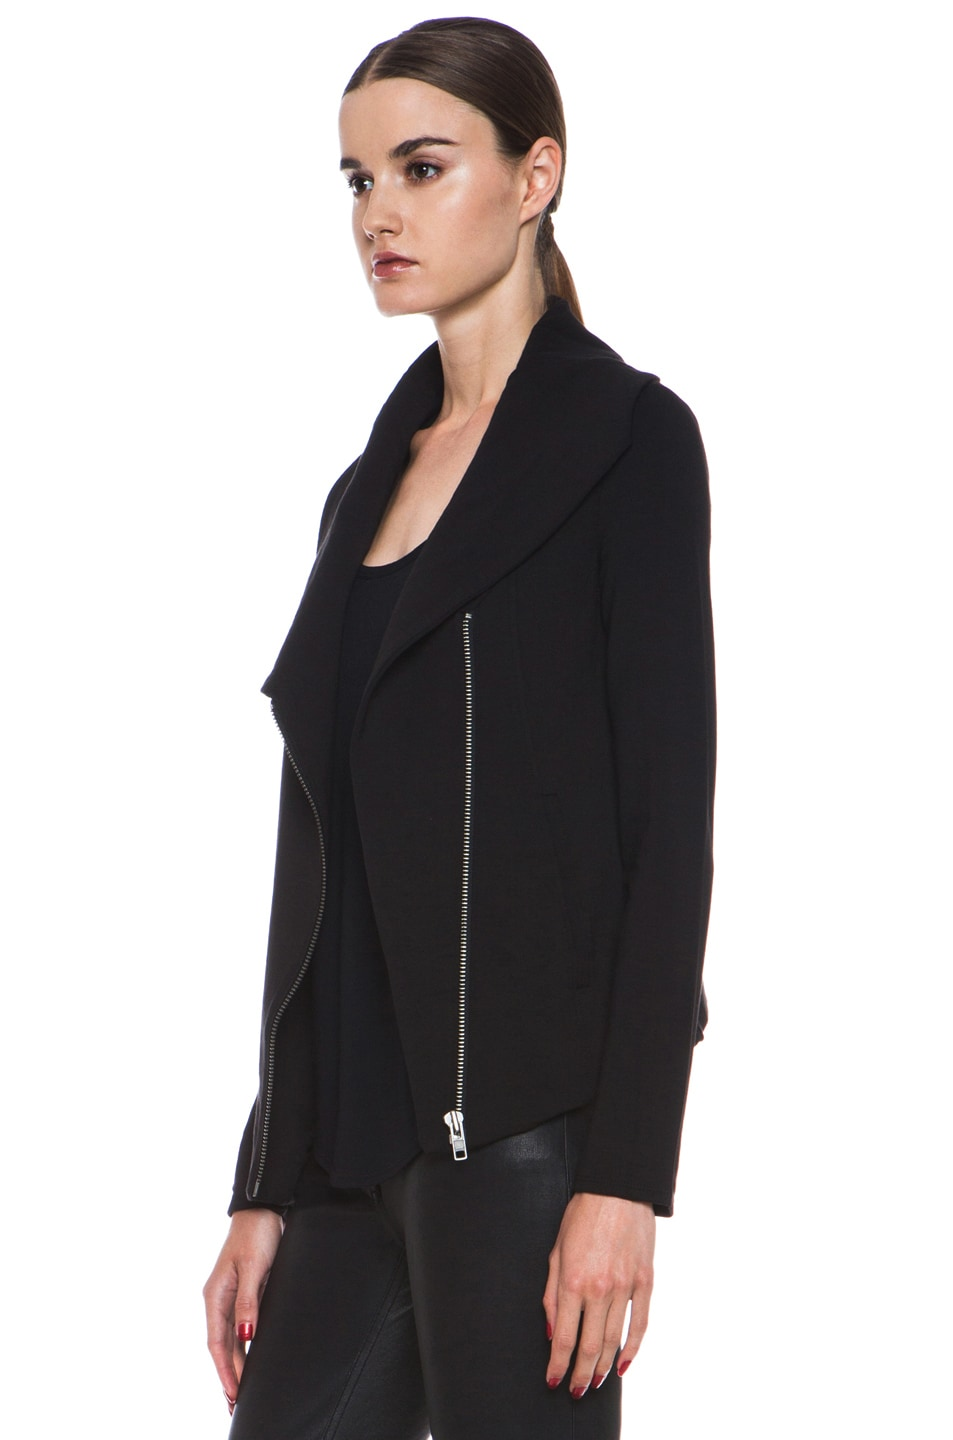 Image 3 of HELMUT Helmut Lang Villus Zip Up Sweatshirt Jacket in Black